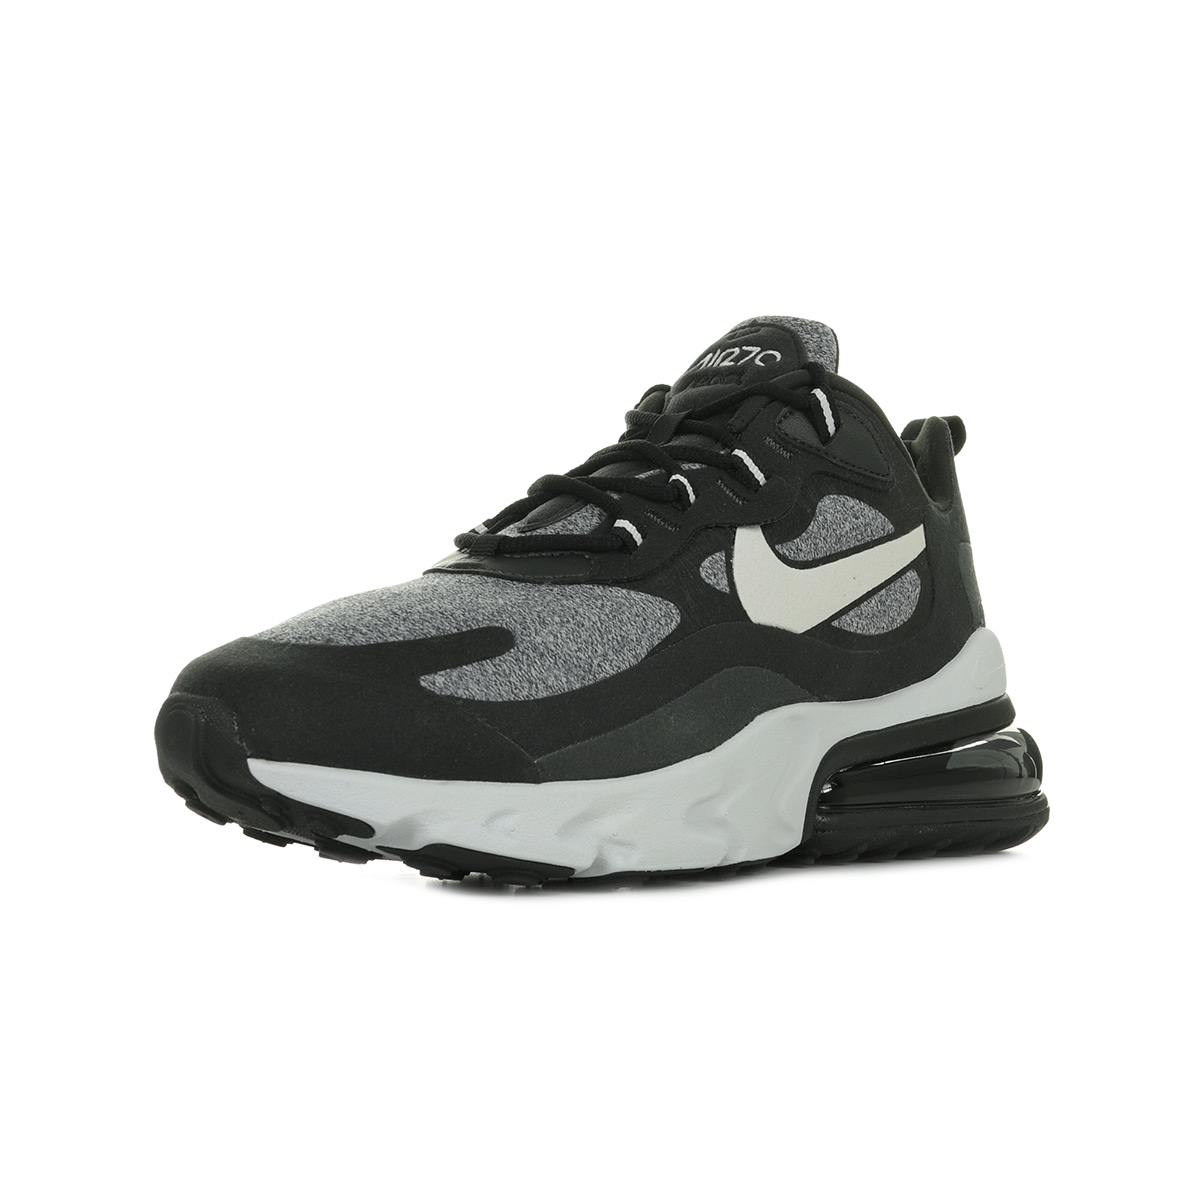 Nike Air Max 270 React AO4971001, Baskets mode homme